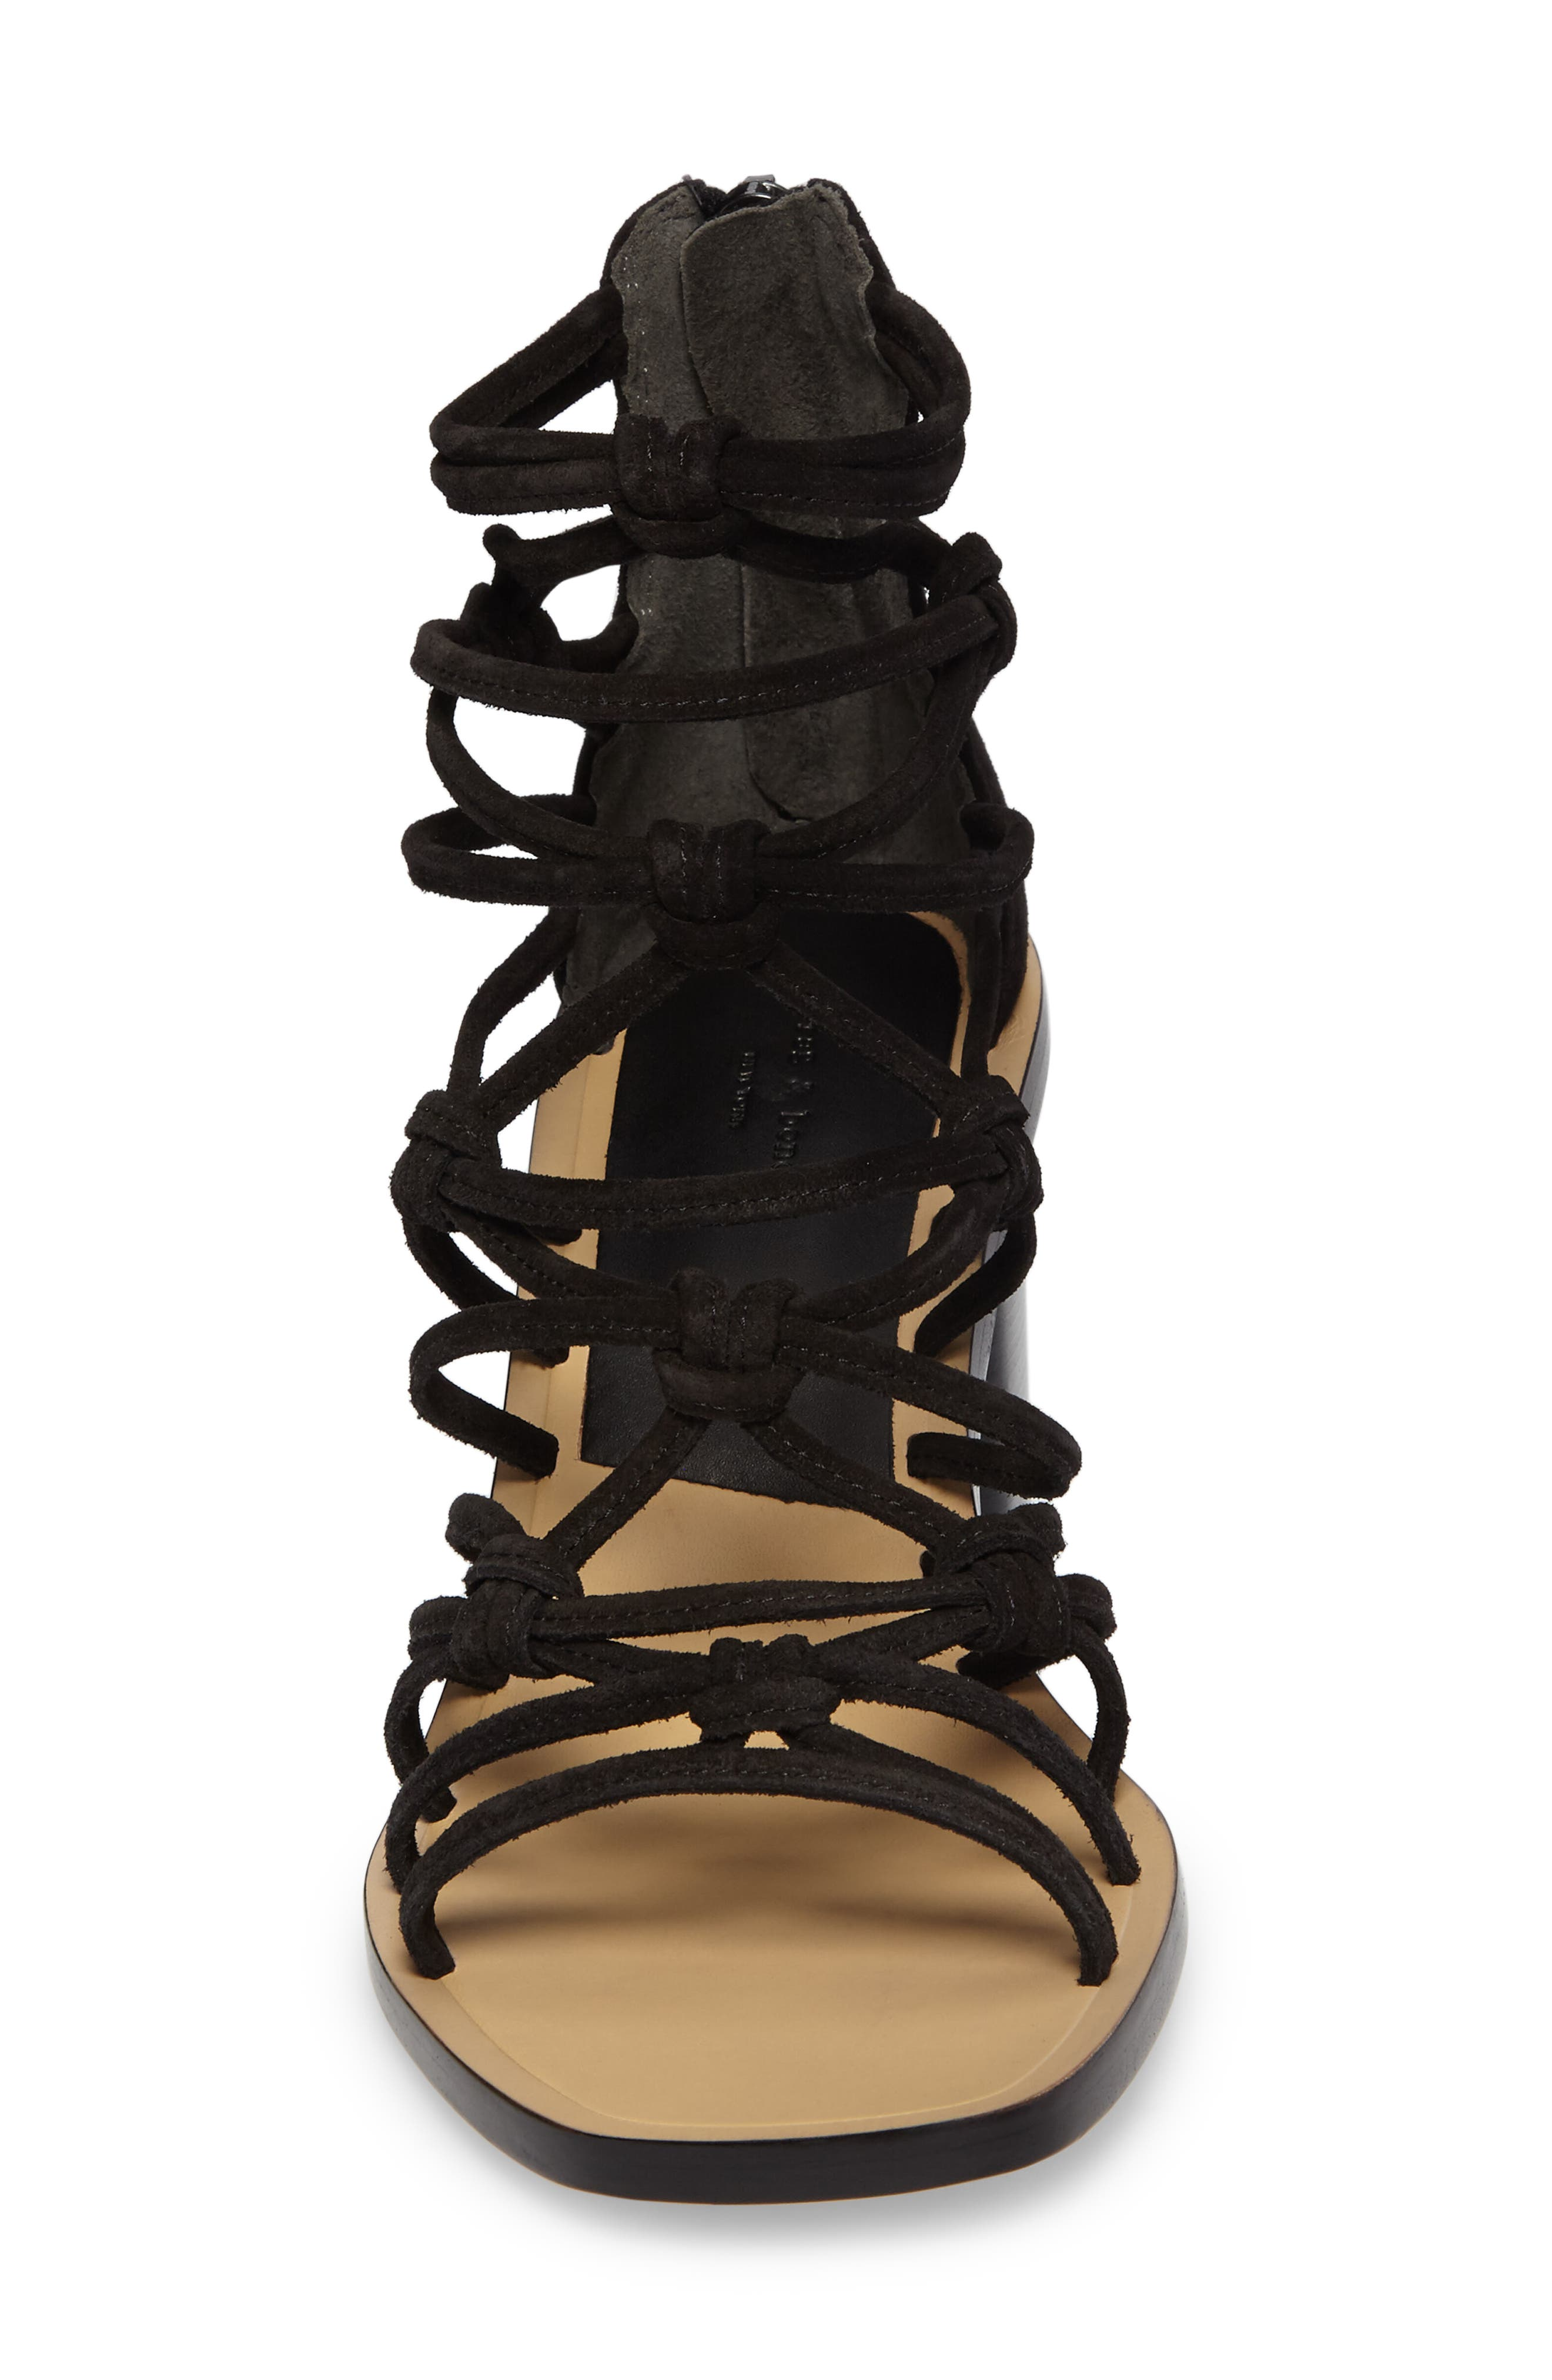 Camille Knotted Strappy Sandal,                             Alternate thumbnail 4, color,                             008